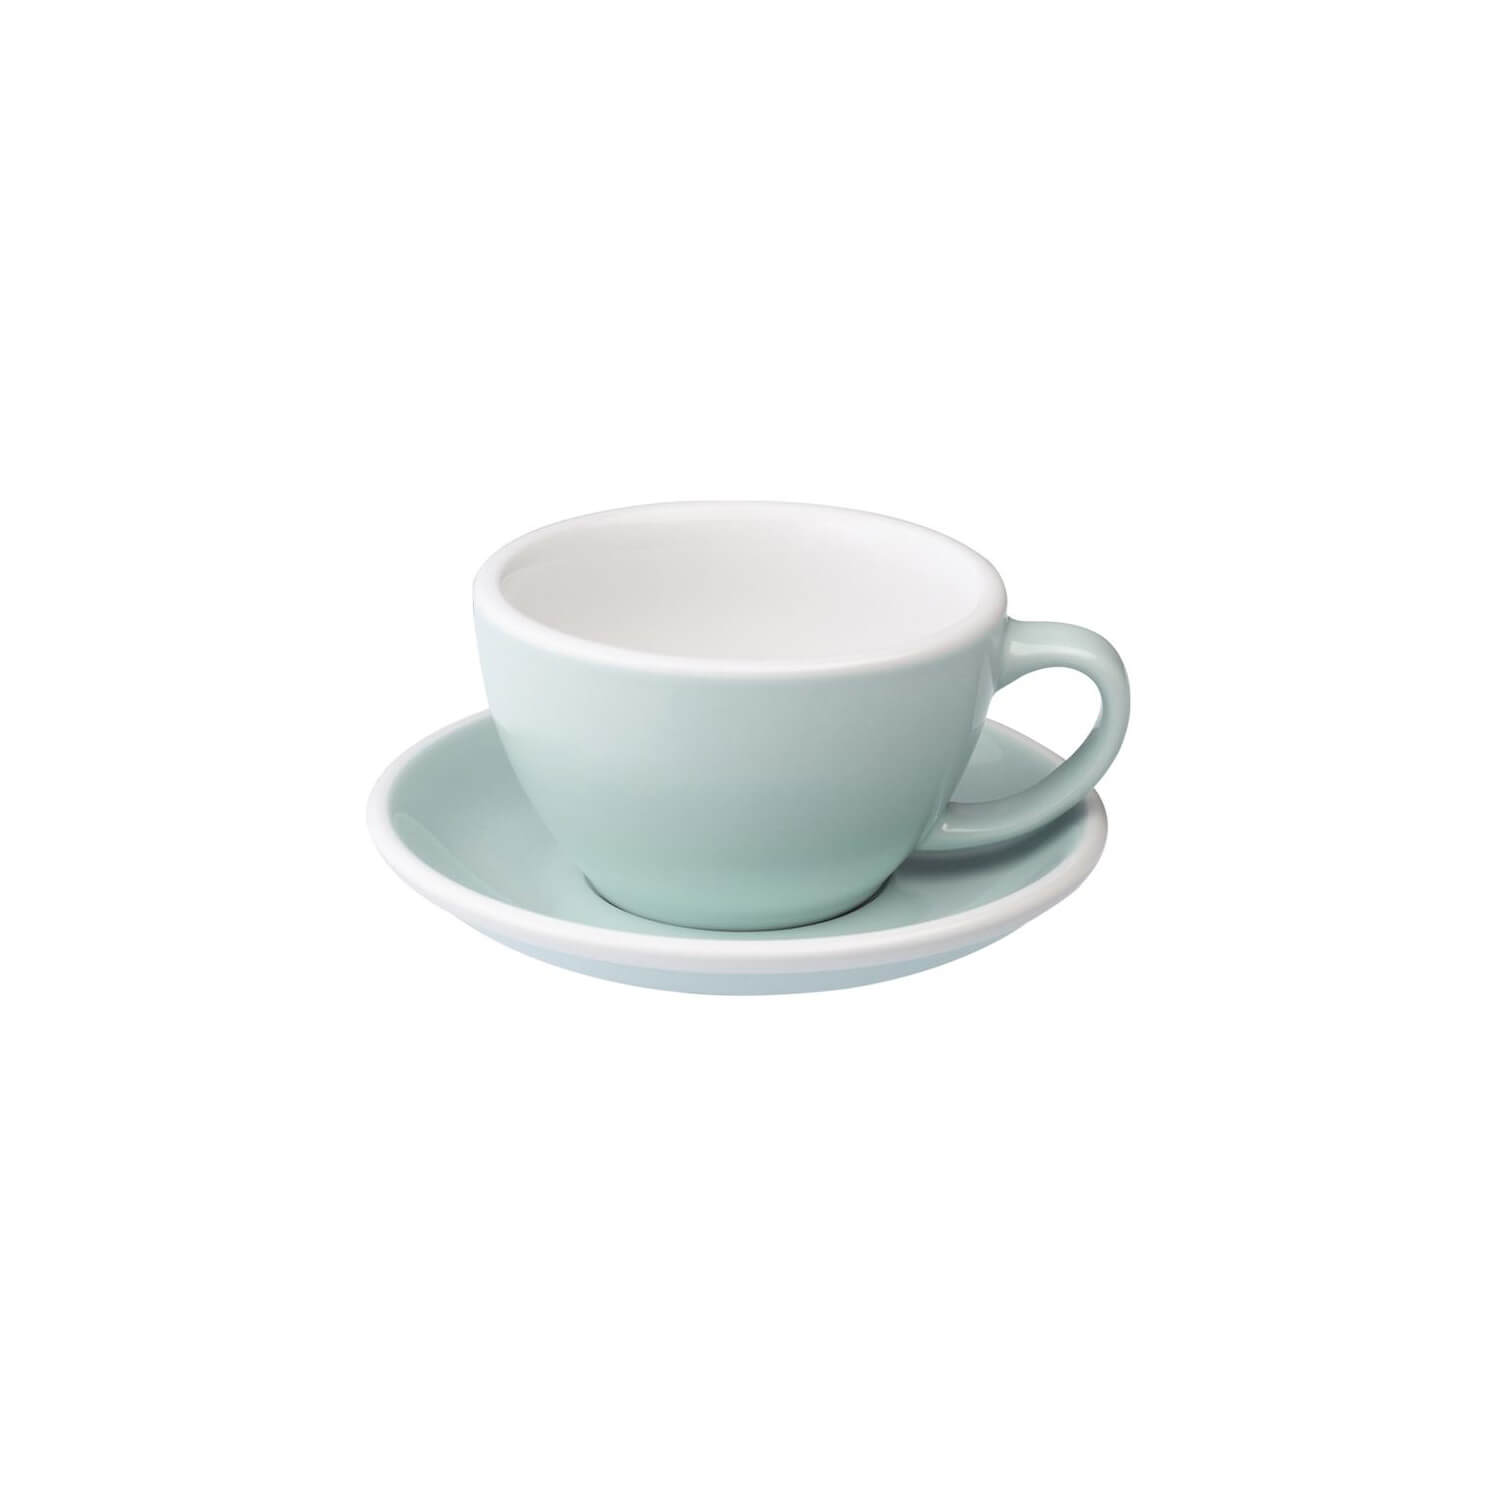 Loveramics - Egg - Latte Cup - River Blue